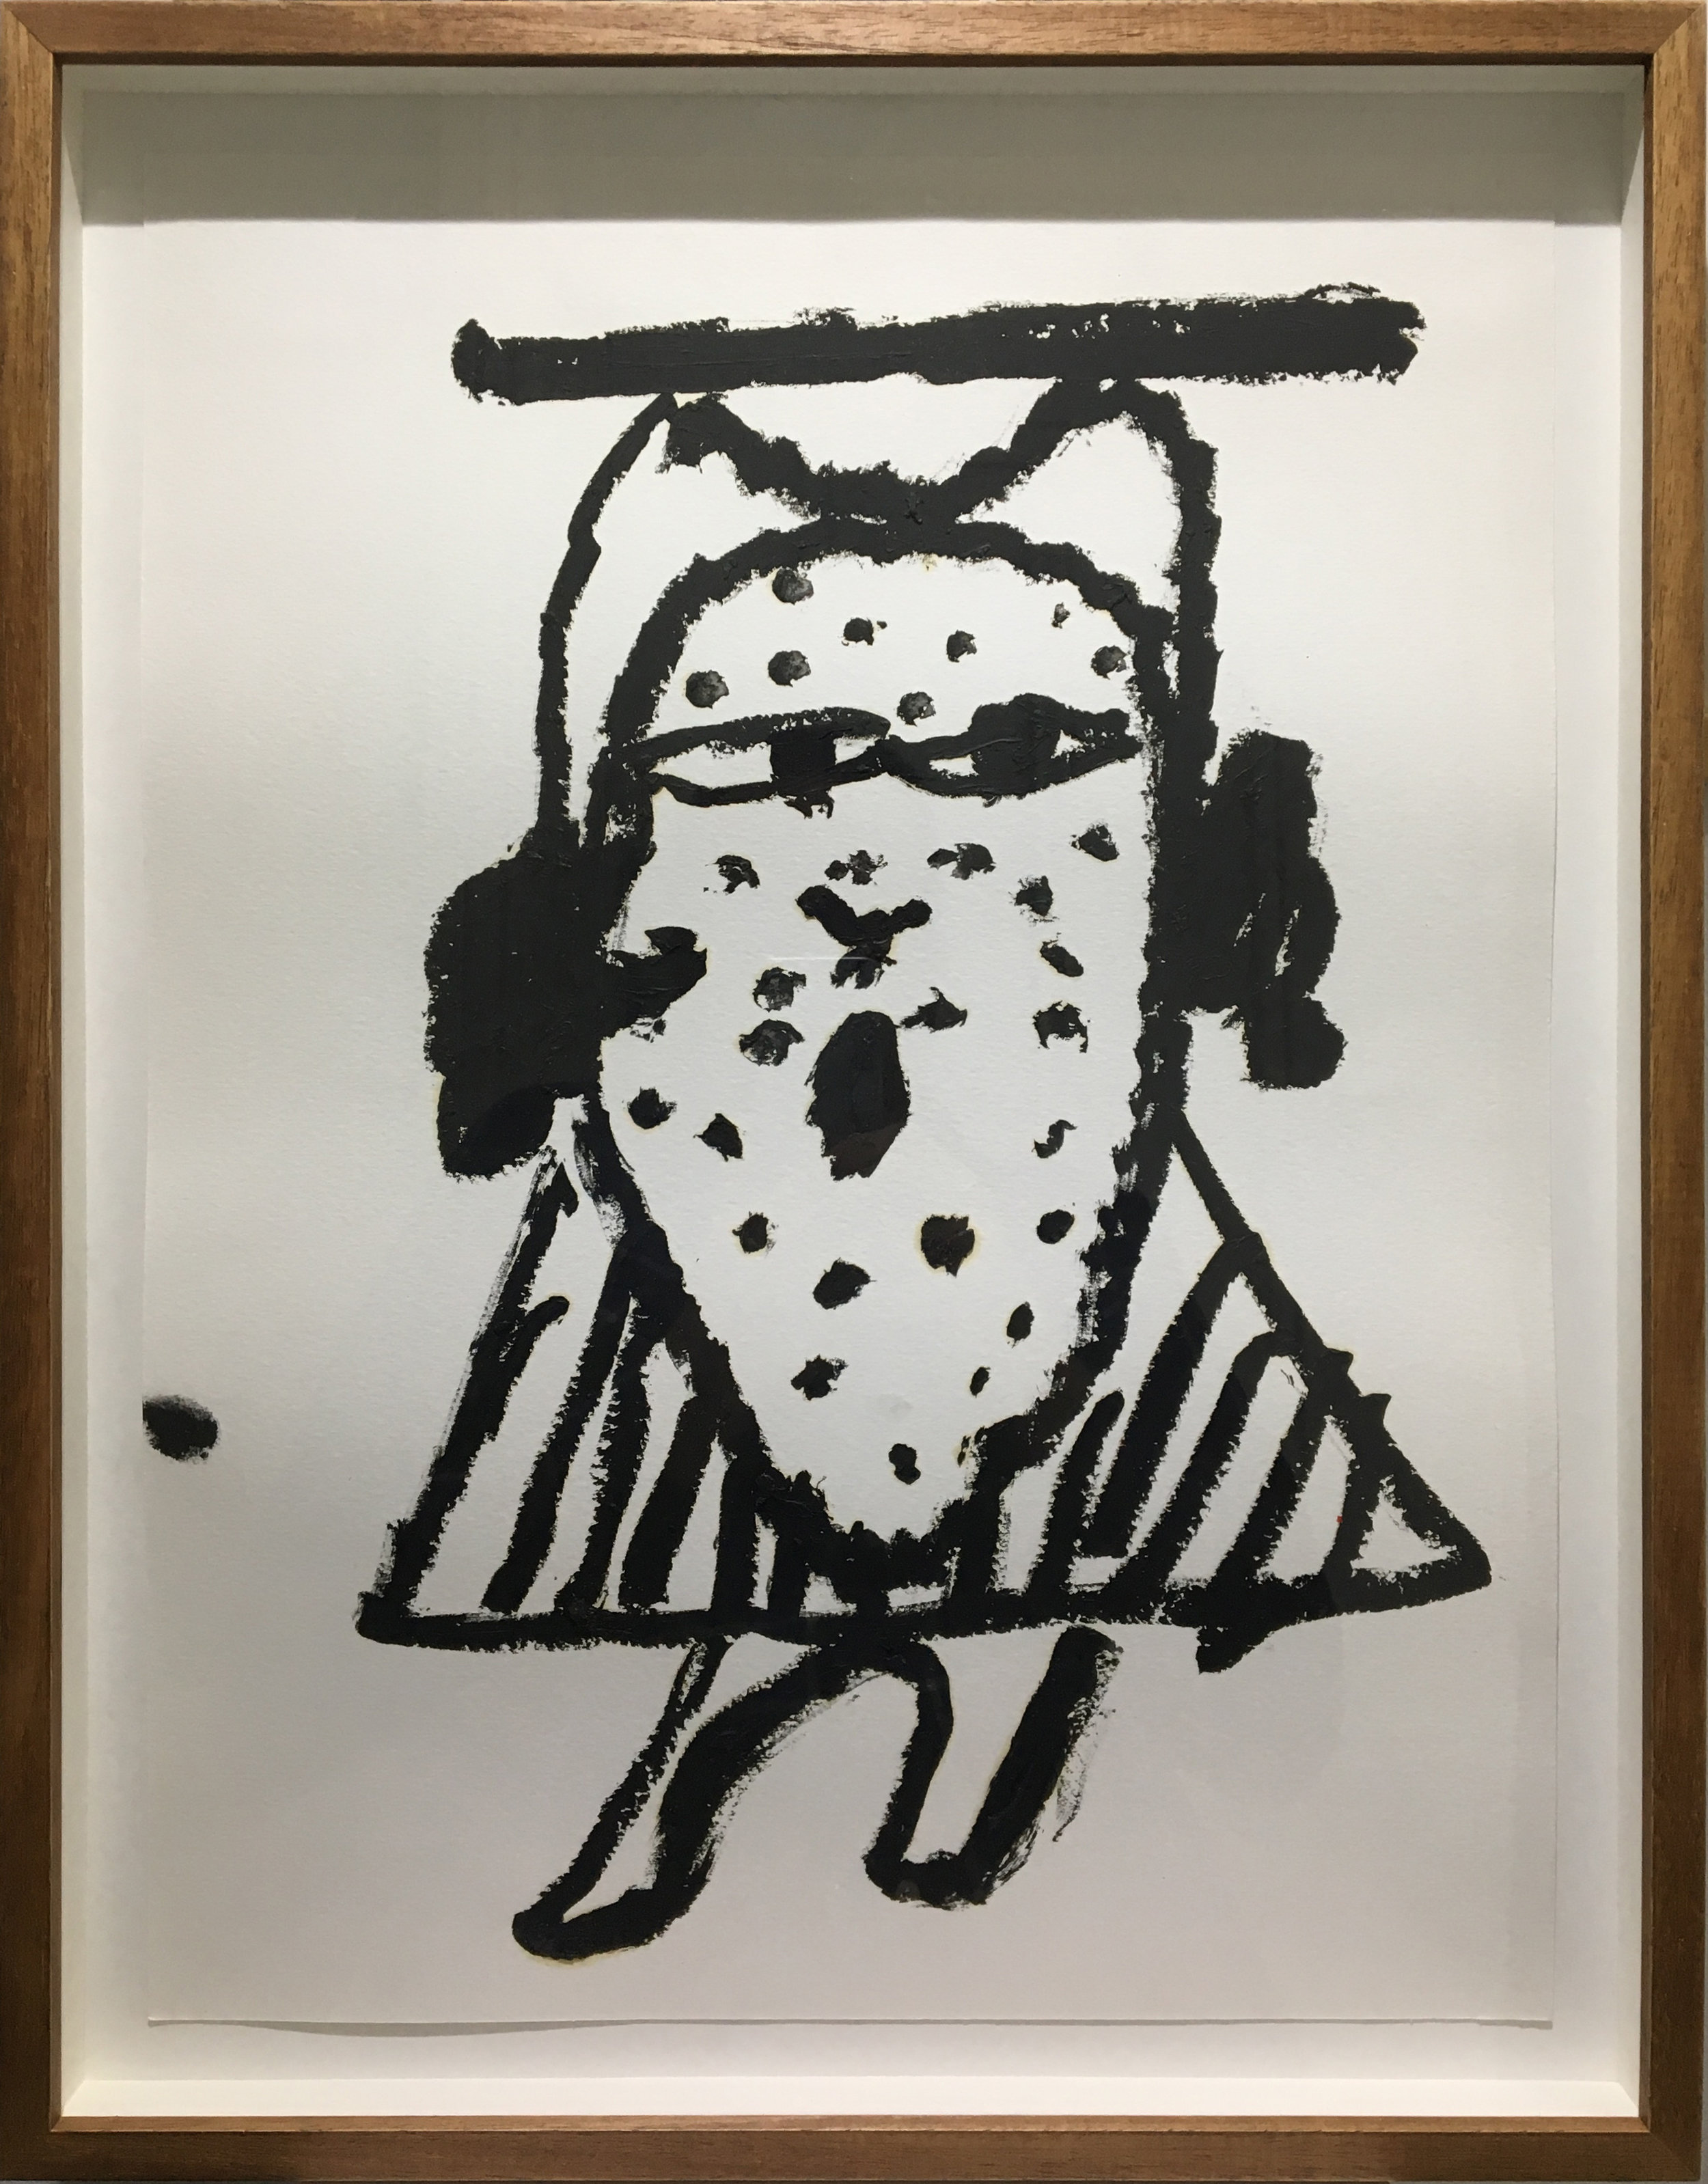 Tom Polo, The Most Elaborate Disguise (15), 2016, oil stick on paper.